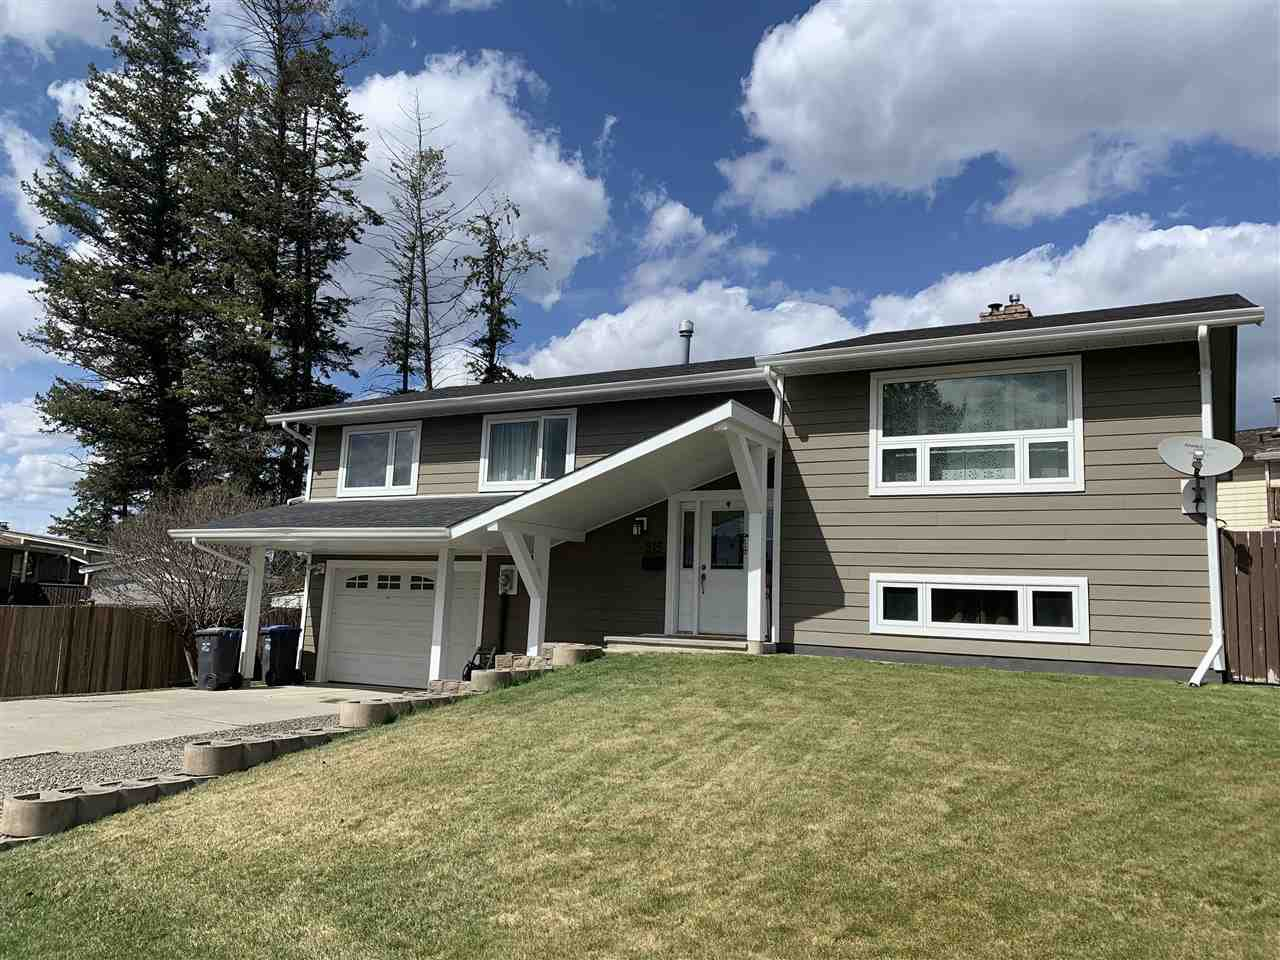 Main Photo: 215 CORNWALL Crescent in Williams Lake: Williams Lake - City House for sale (Williams Lake (Zone 27))  : MLS®# R2452019